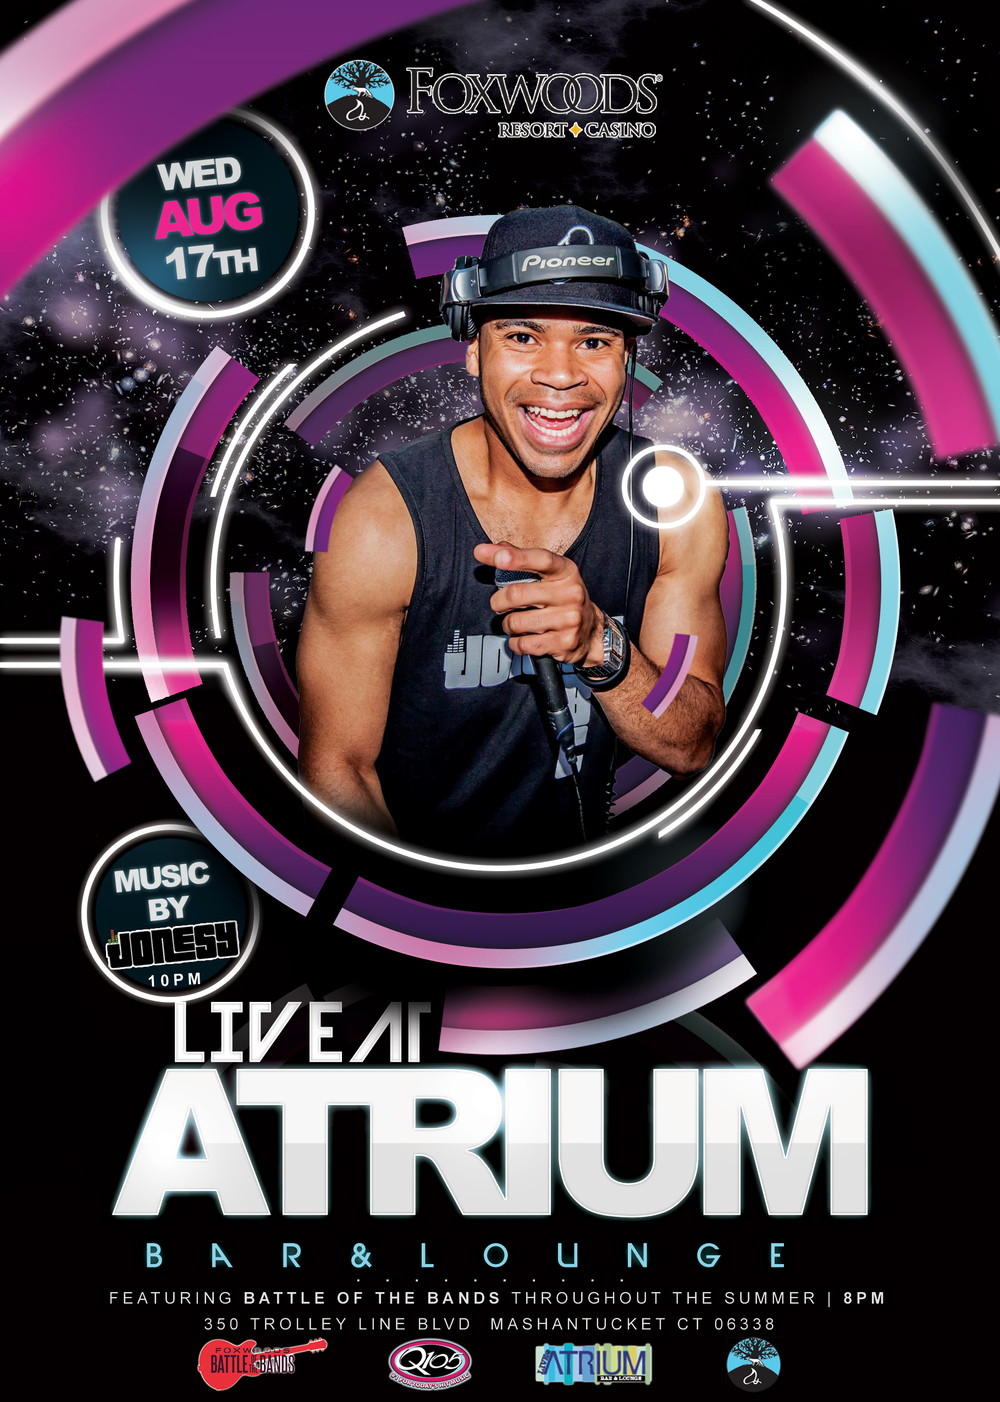 Wednesday, August 17th I make my way back to   Foxwoods Resort Casino   at the   Atrium Lounge  , located on the Casino Level next to Rainmaker Square.  DJ begins at 10:00pm following   Battle of the Bands  .  Meet me there!